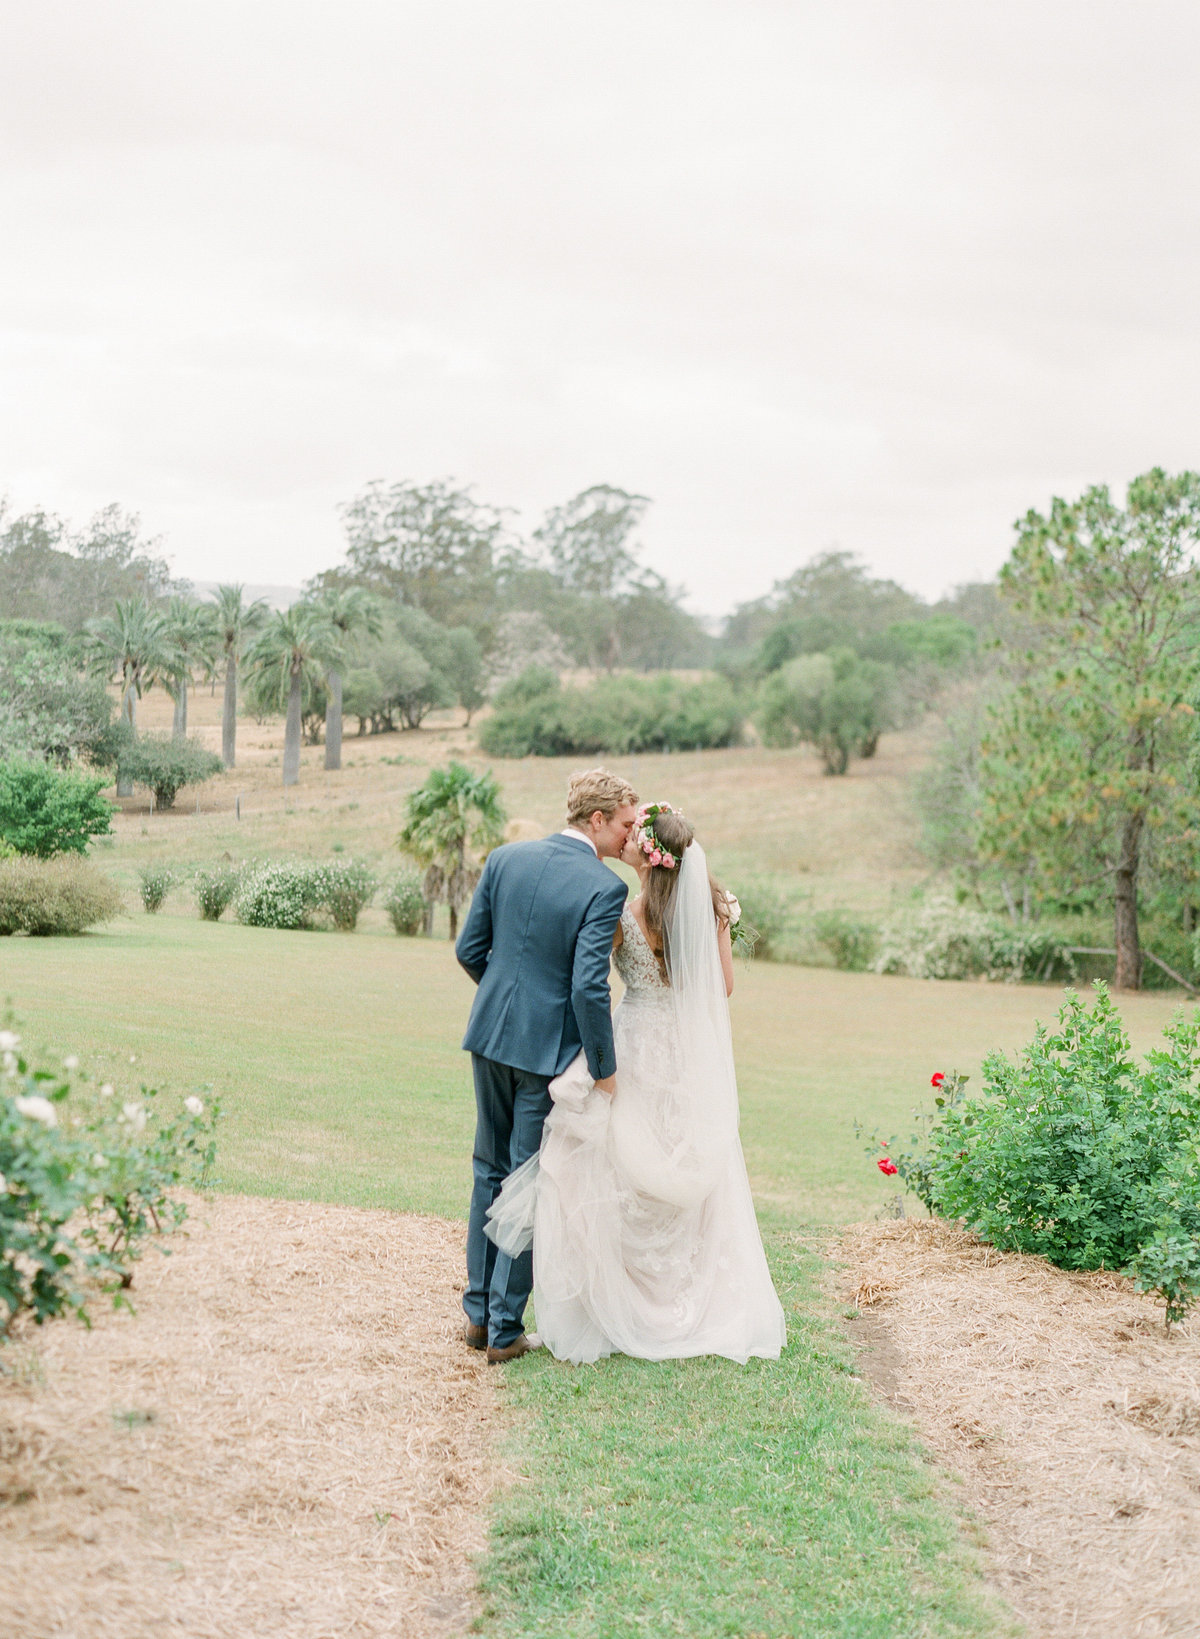 dreamy fine art wedding australia camden will capen 0063